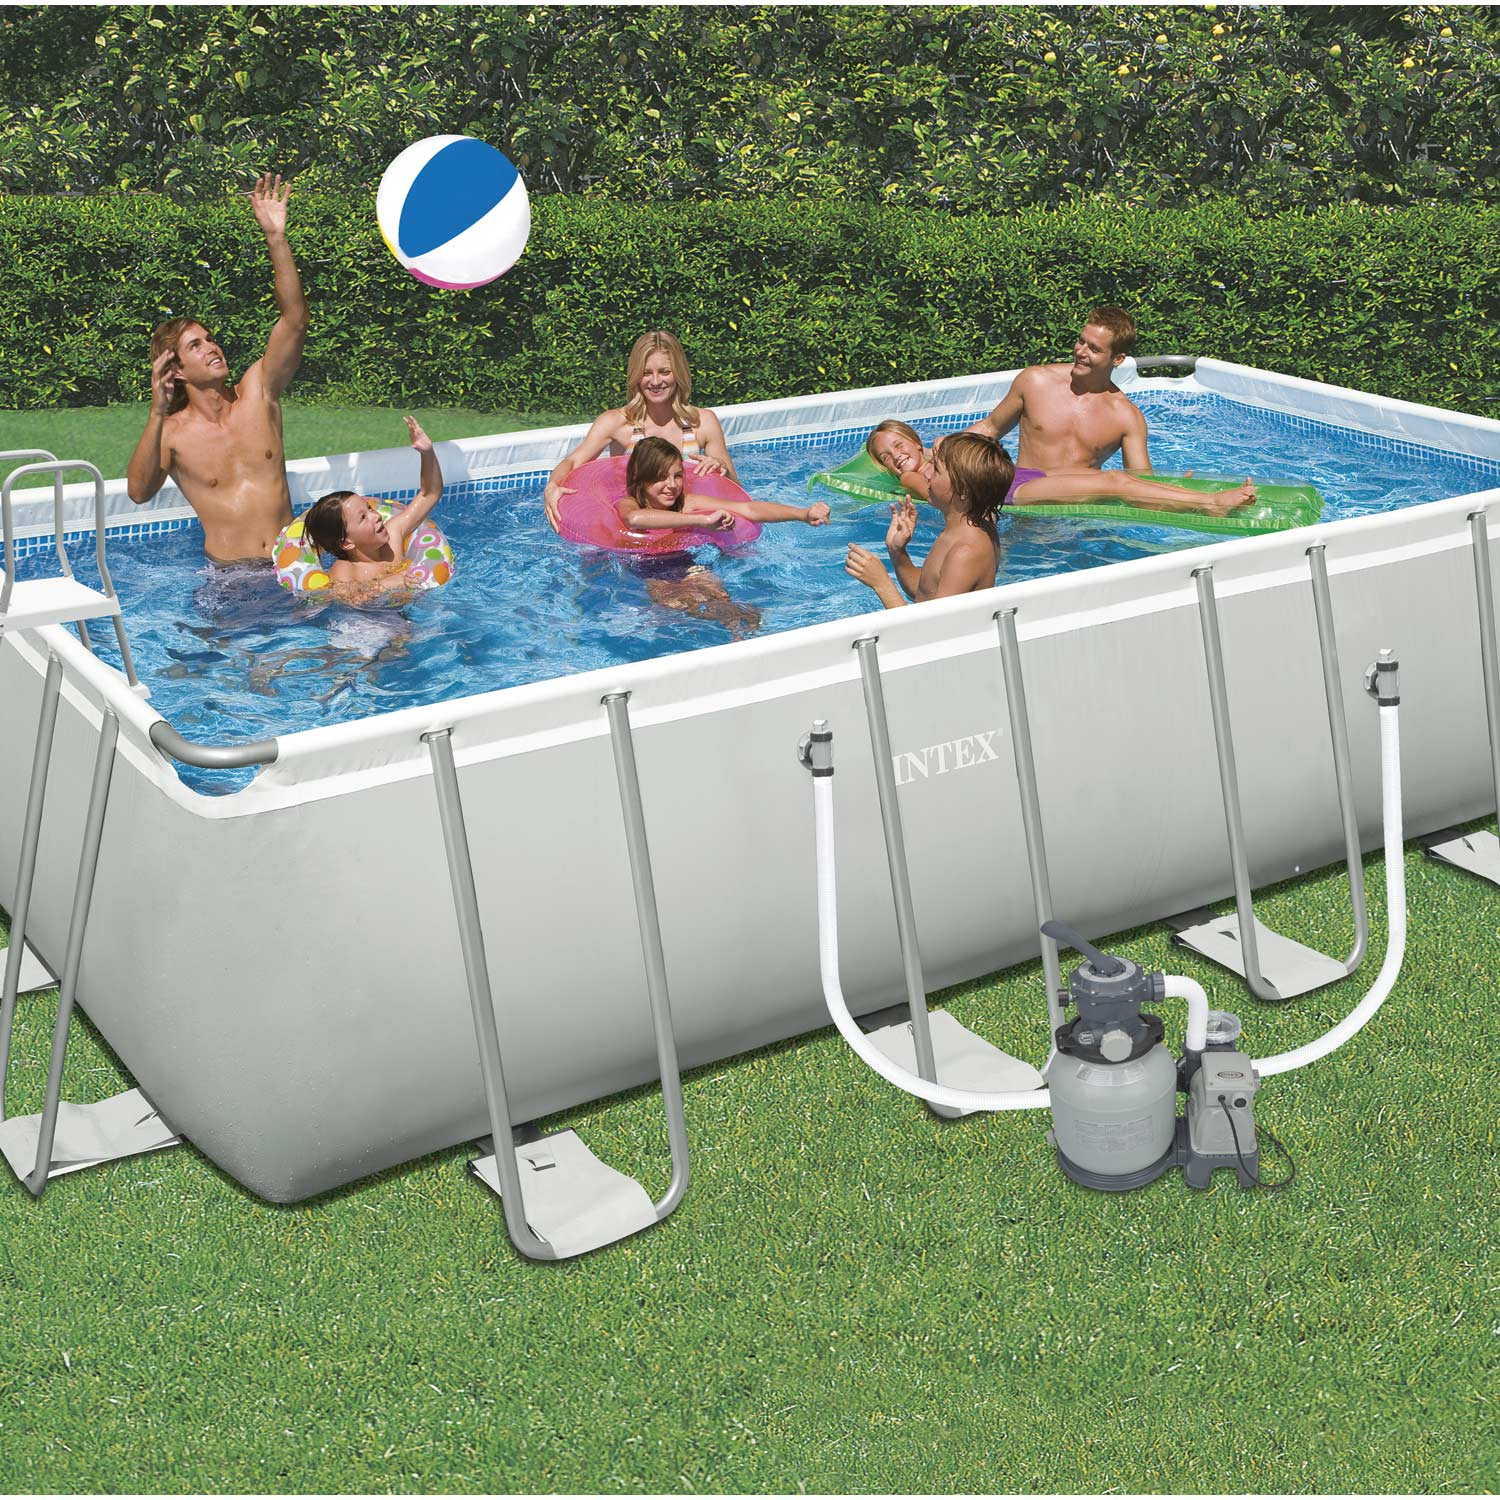 Piscine hors sol autoportante tubulaire ultra silver intex for Margelle piscine hors sol leroy merlin